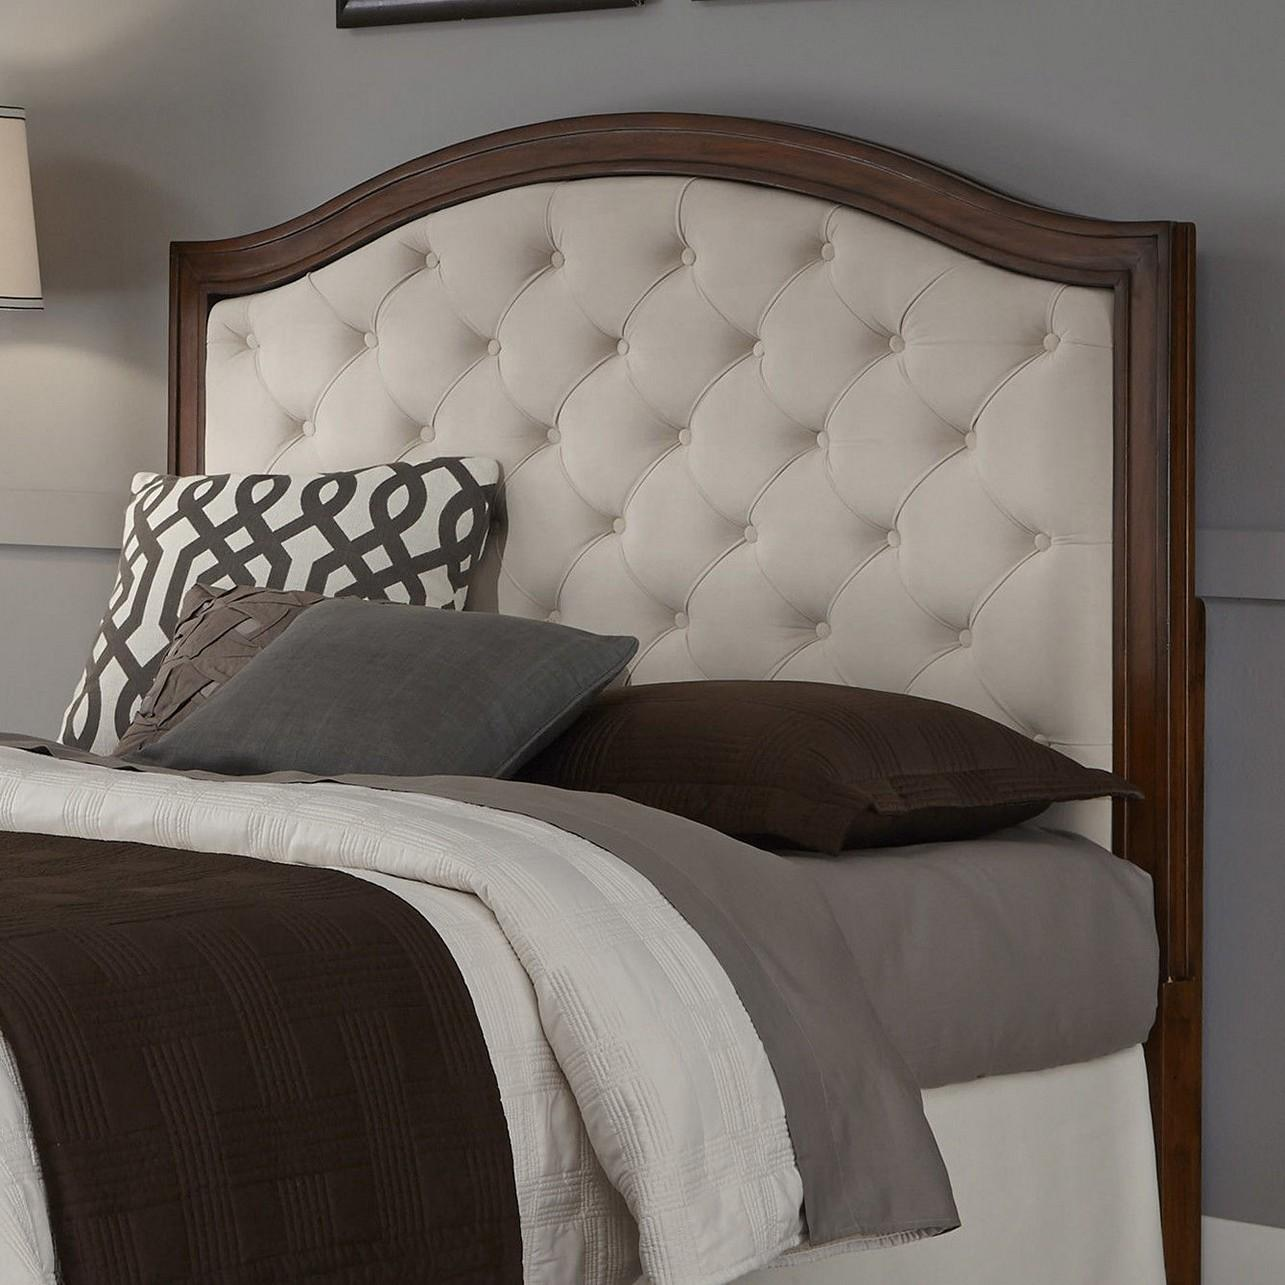 Make Padded Headboard Tufted Queen